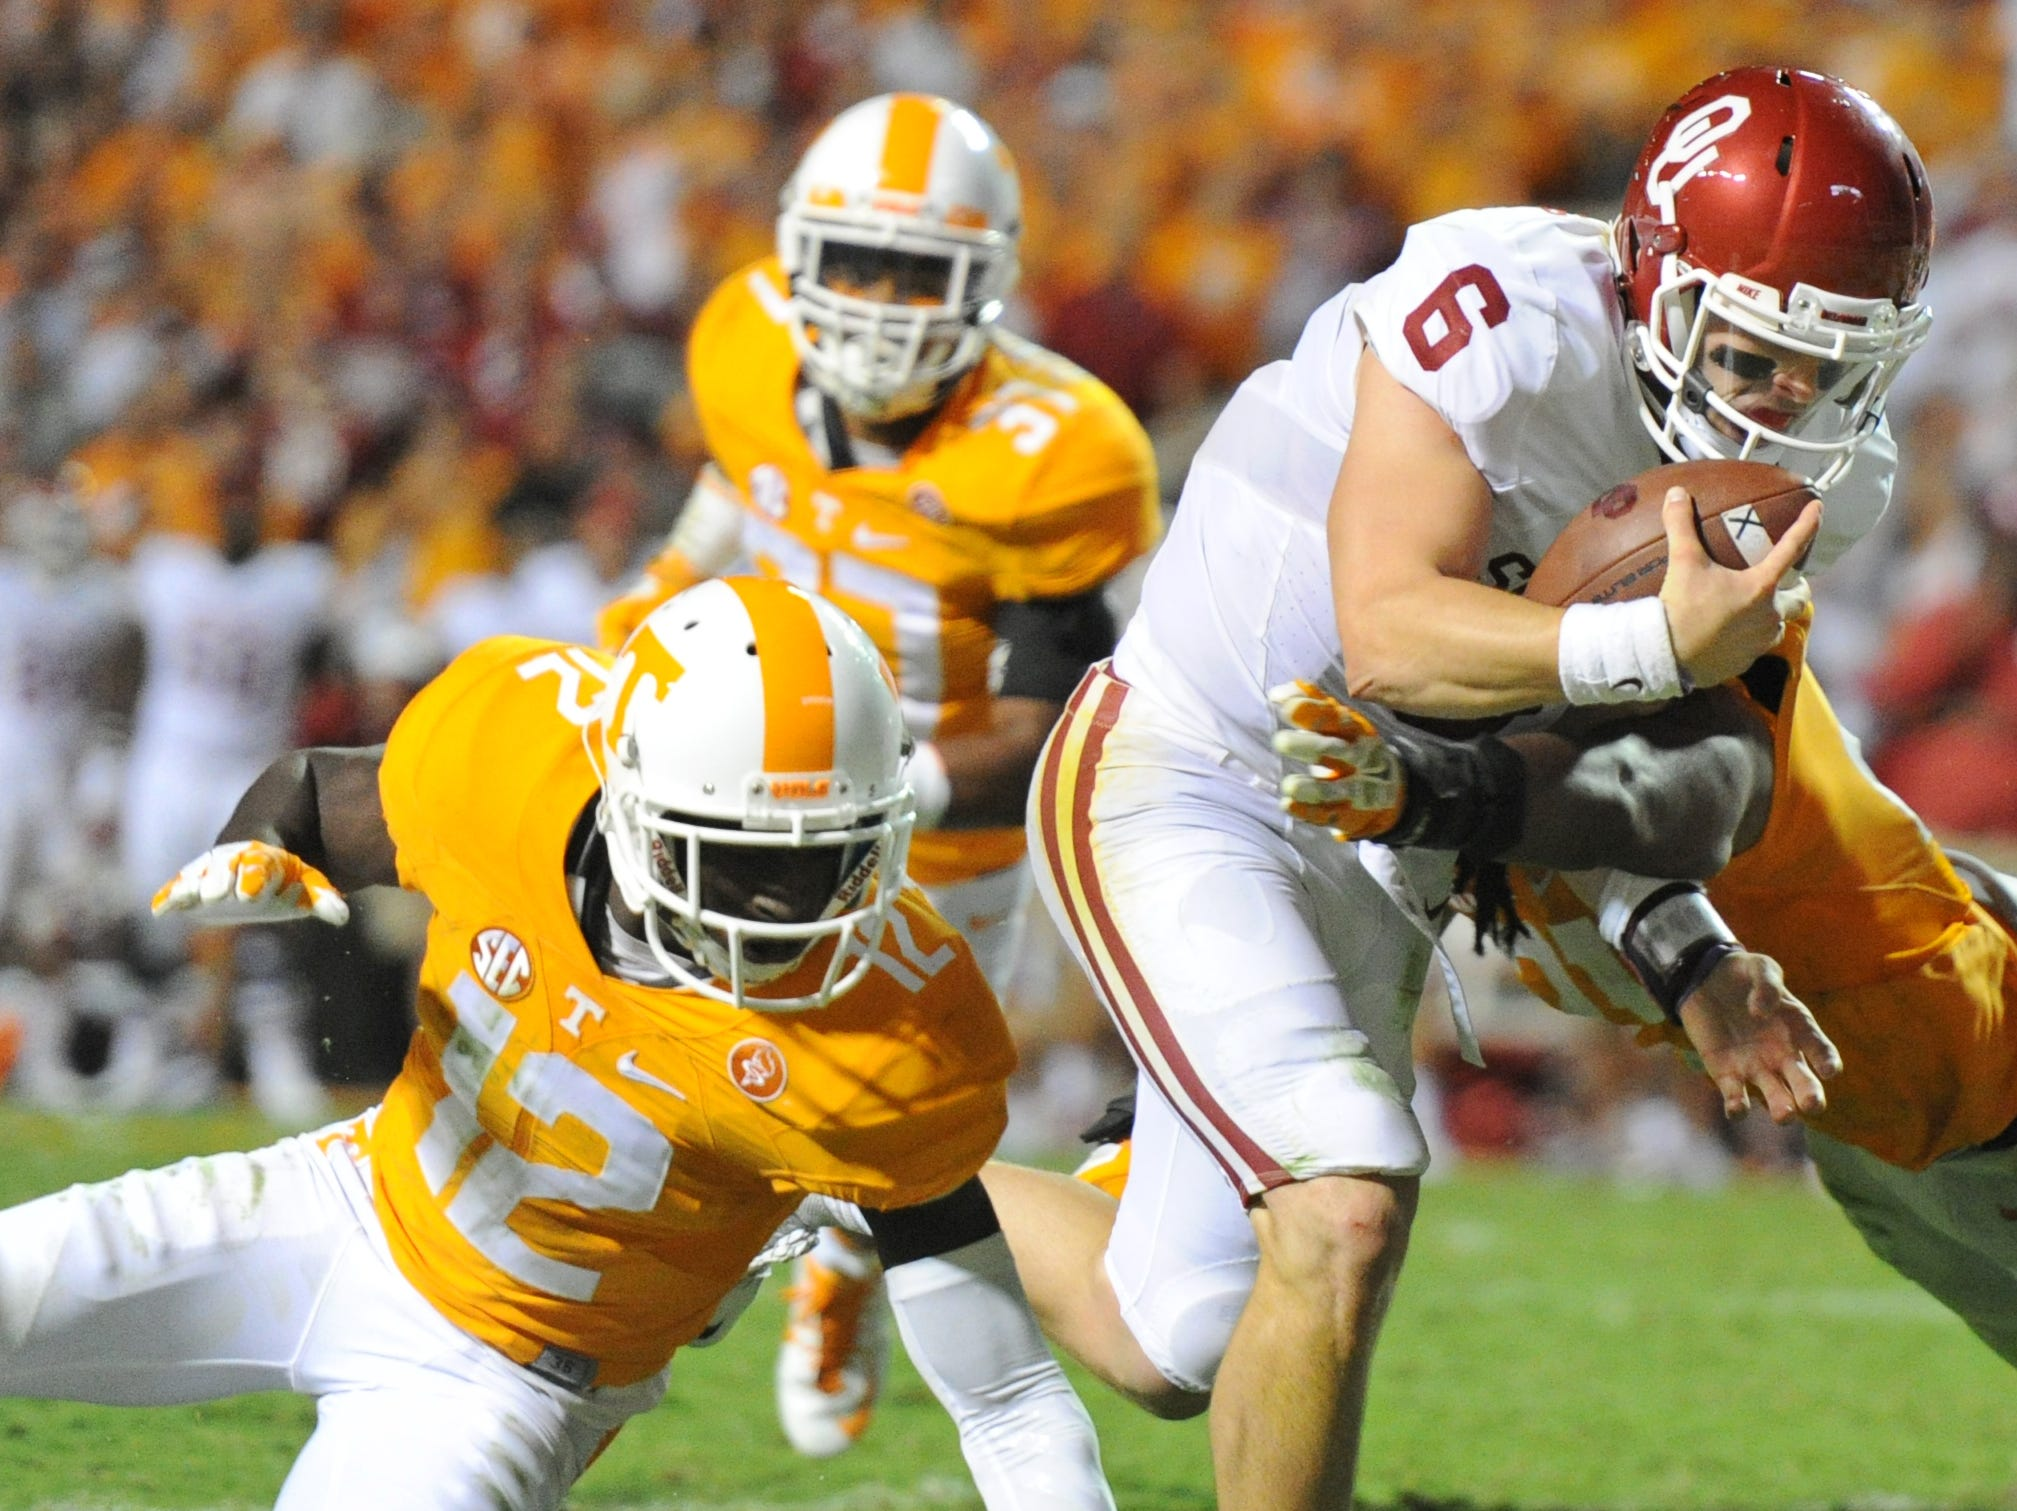 Oklahoma quarterback Baker Mayfield (6) beats a tackle by Tennessee defensive back Emmanuel Moseley (12) to score a touchdown in the first overtime period at Neyland Stadium on Saturday, Sept. 12, 2015 in Knoxville, Tenn. Oklahoma won 31-24.